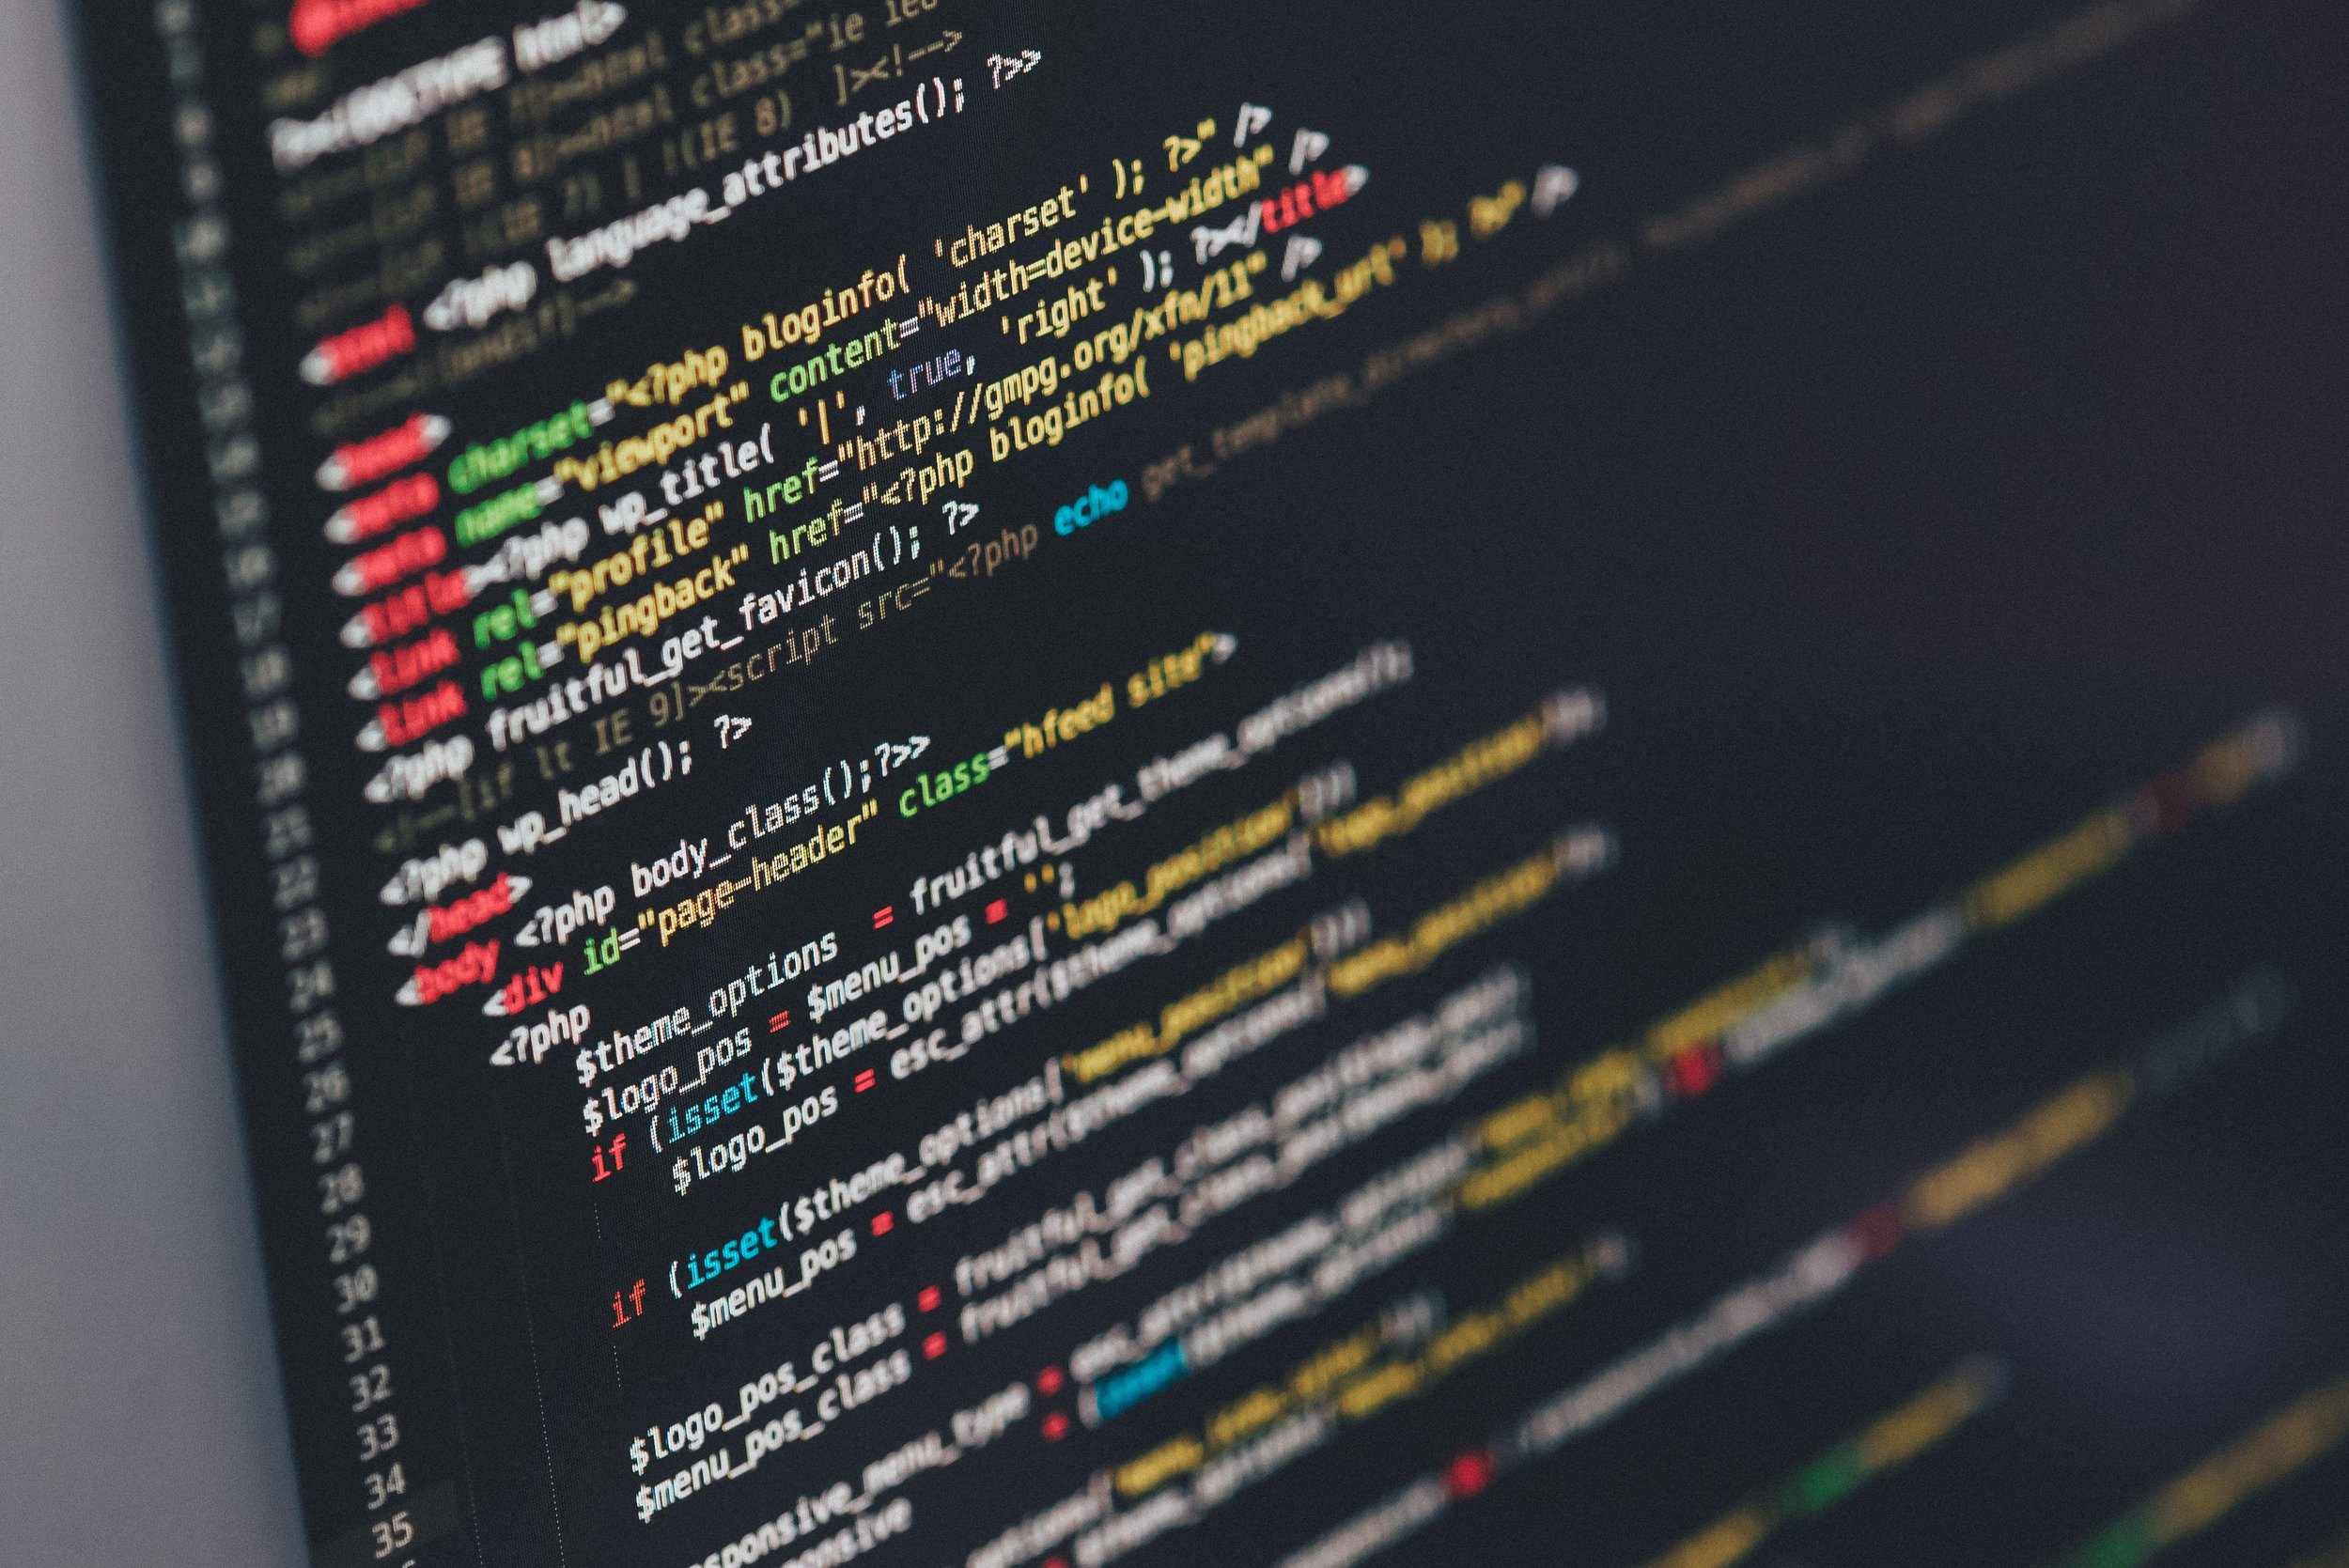 Software Design and Development   From Rails API's to React and ReactNative Cross Platform solutions, we have selected a stack that will cover just about anything you can throw at us.